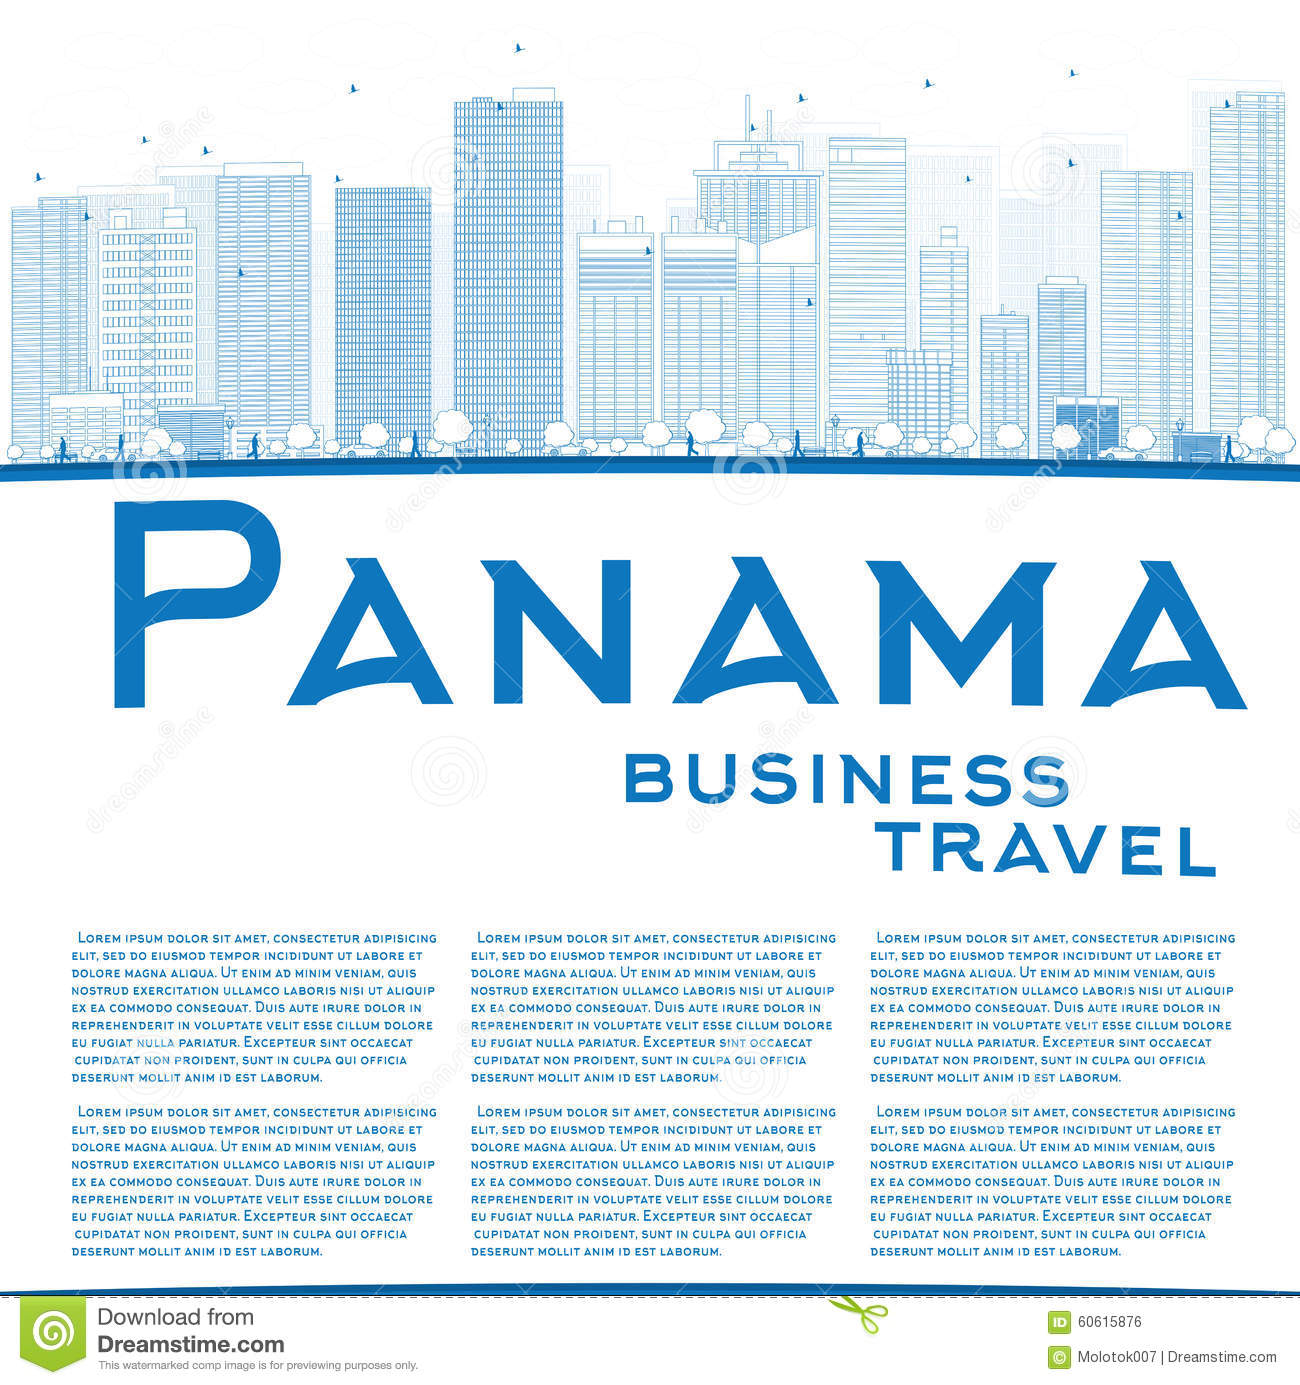 Outline Panama City skyline with blue skyscrapers and copy space